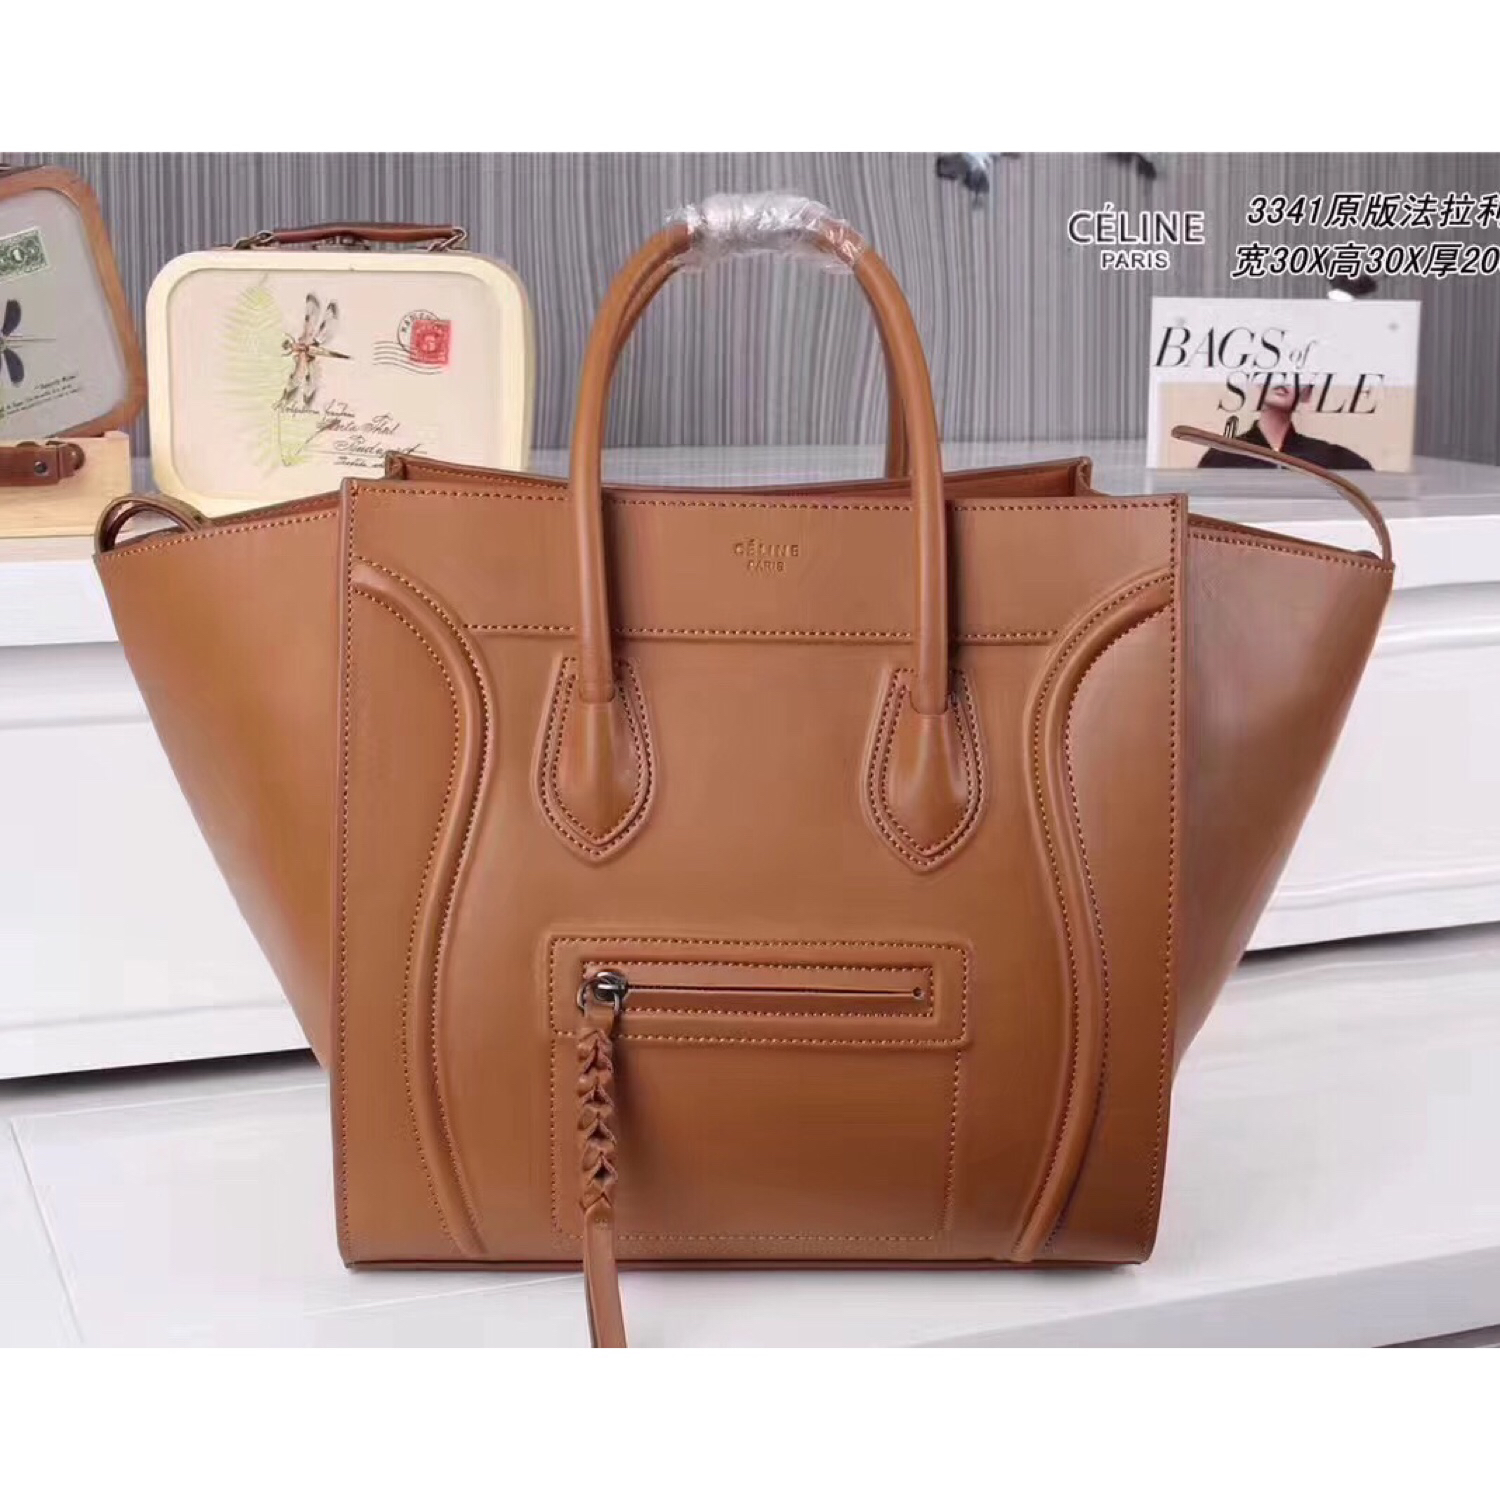 Celine Boston Brown Smooth Leather Tote Handbag